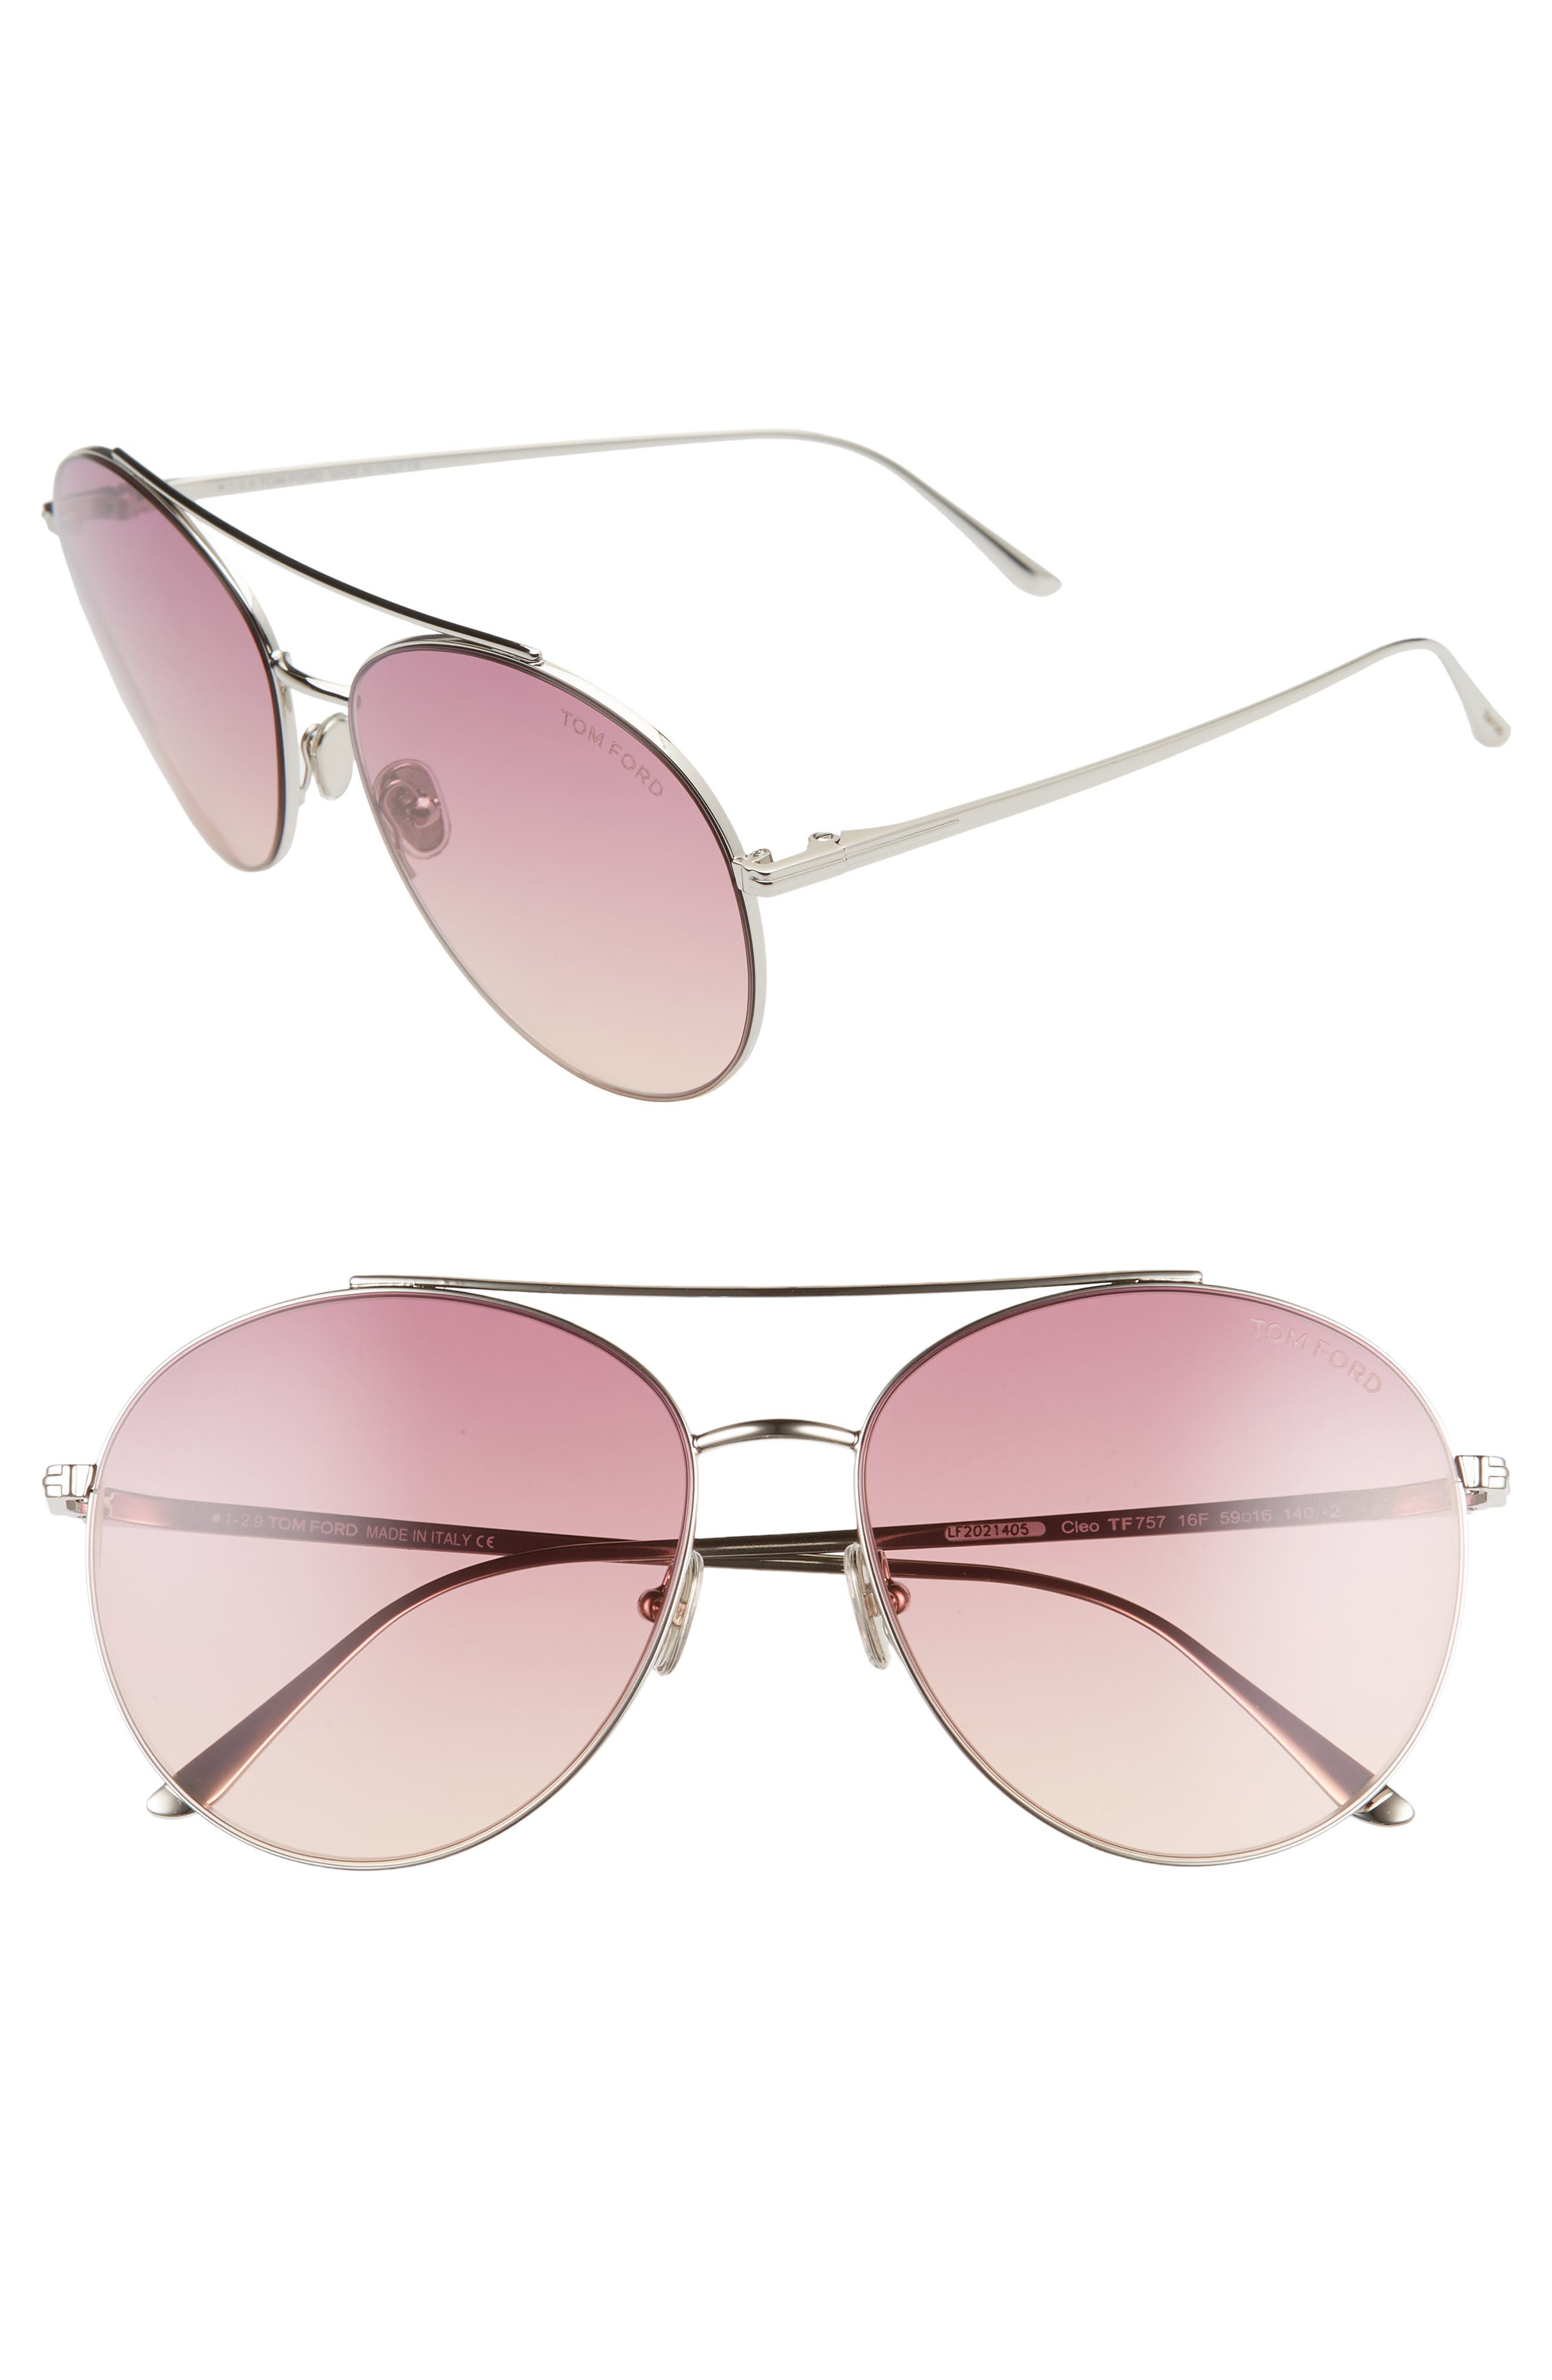 Image of Tom Ford Cleo 59mm Aviator Sunglasses